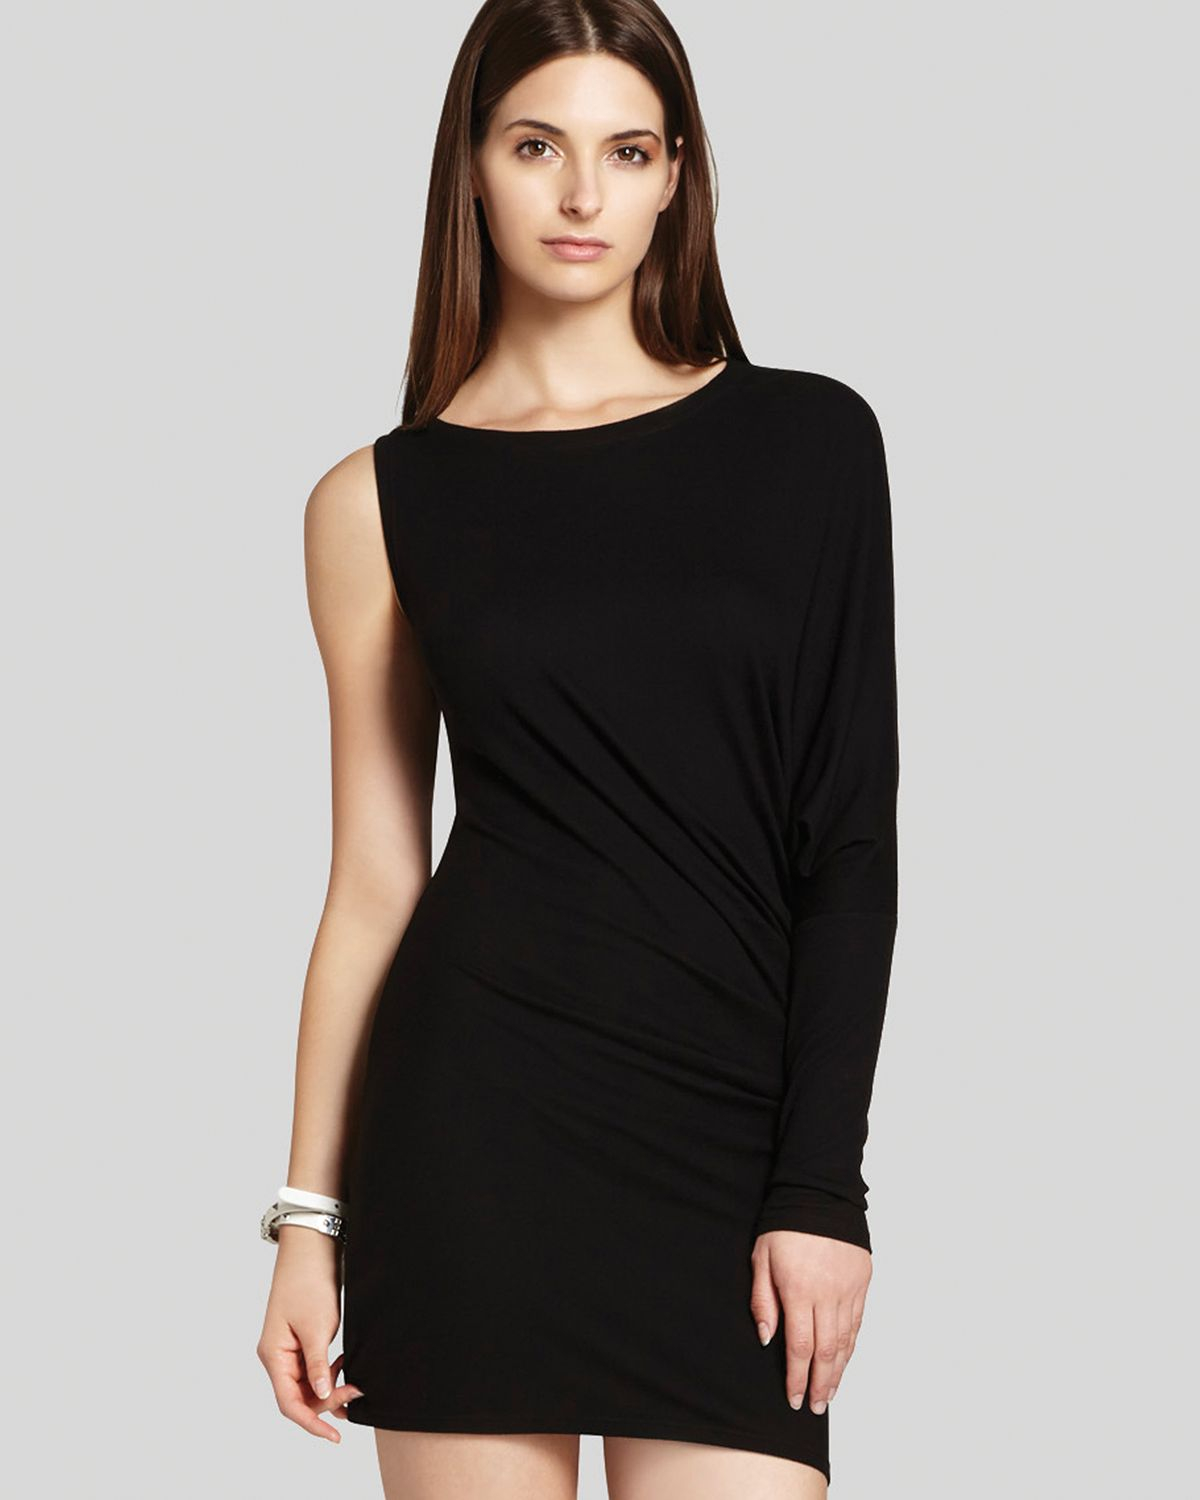 bcbgmaxazria-black-bcbg-max-azria-dress-